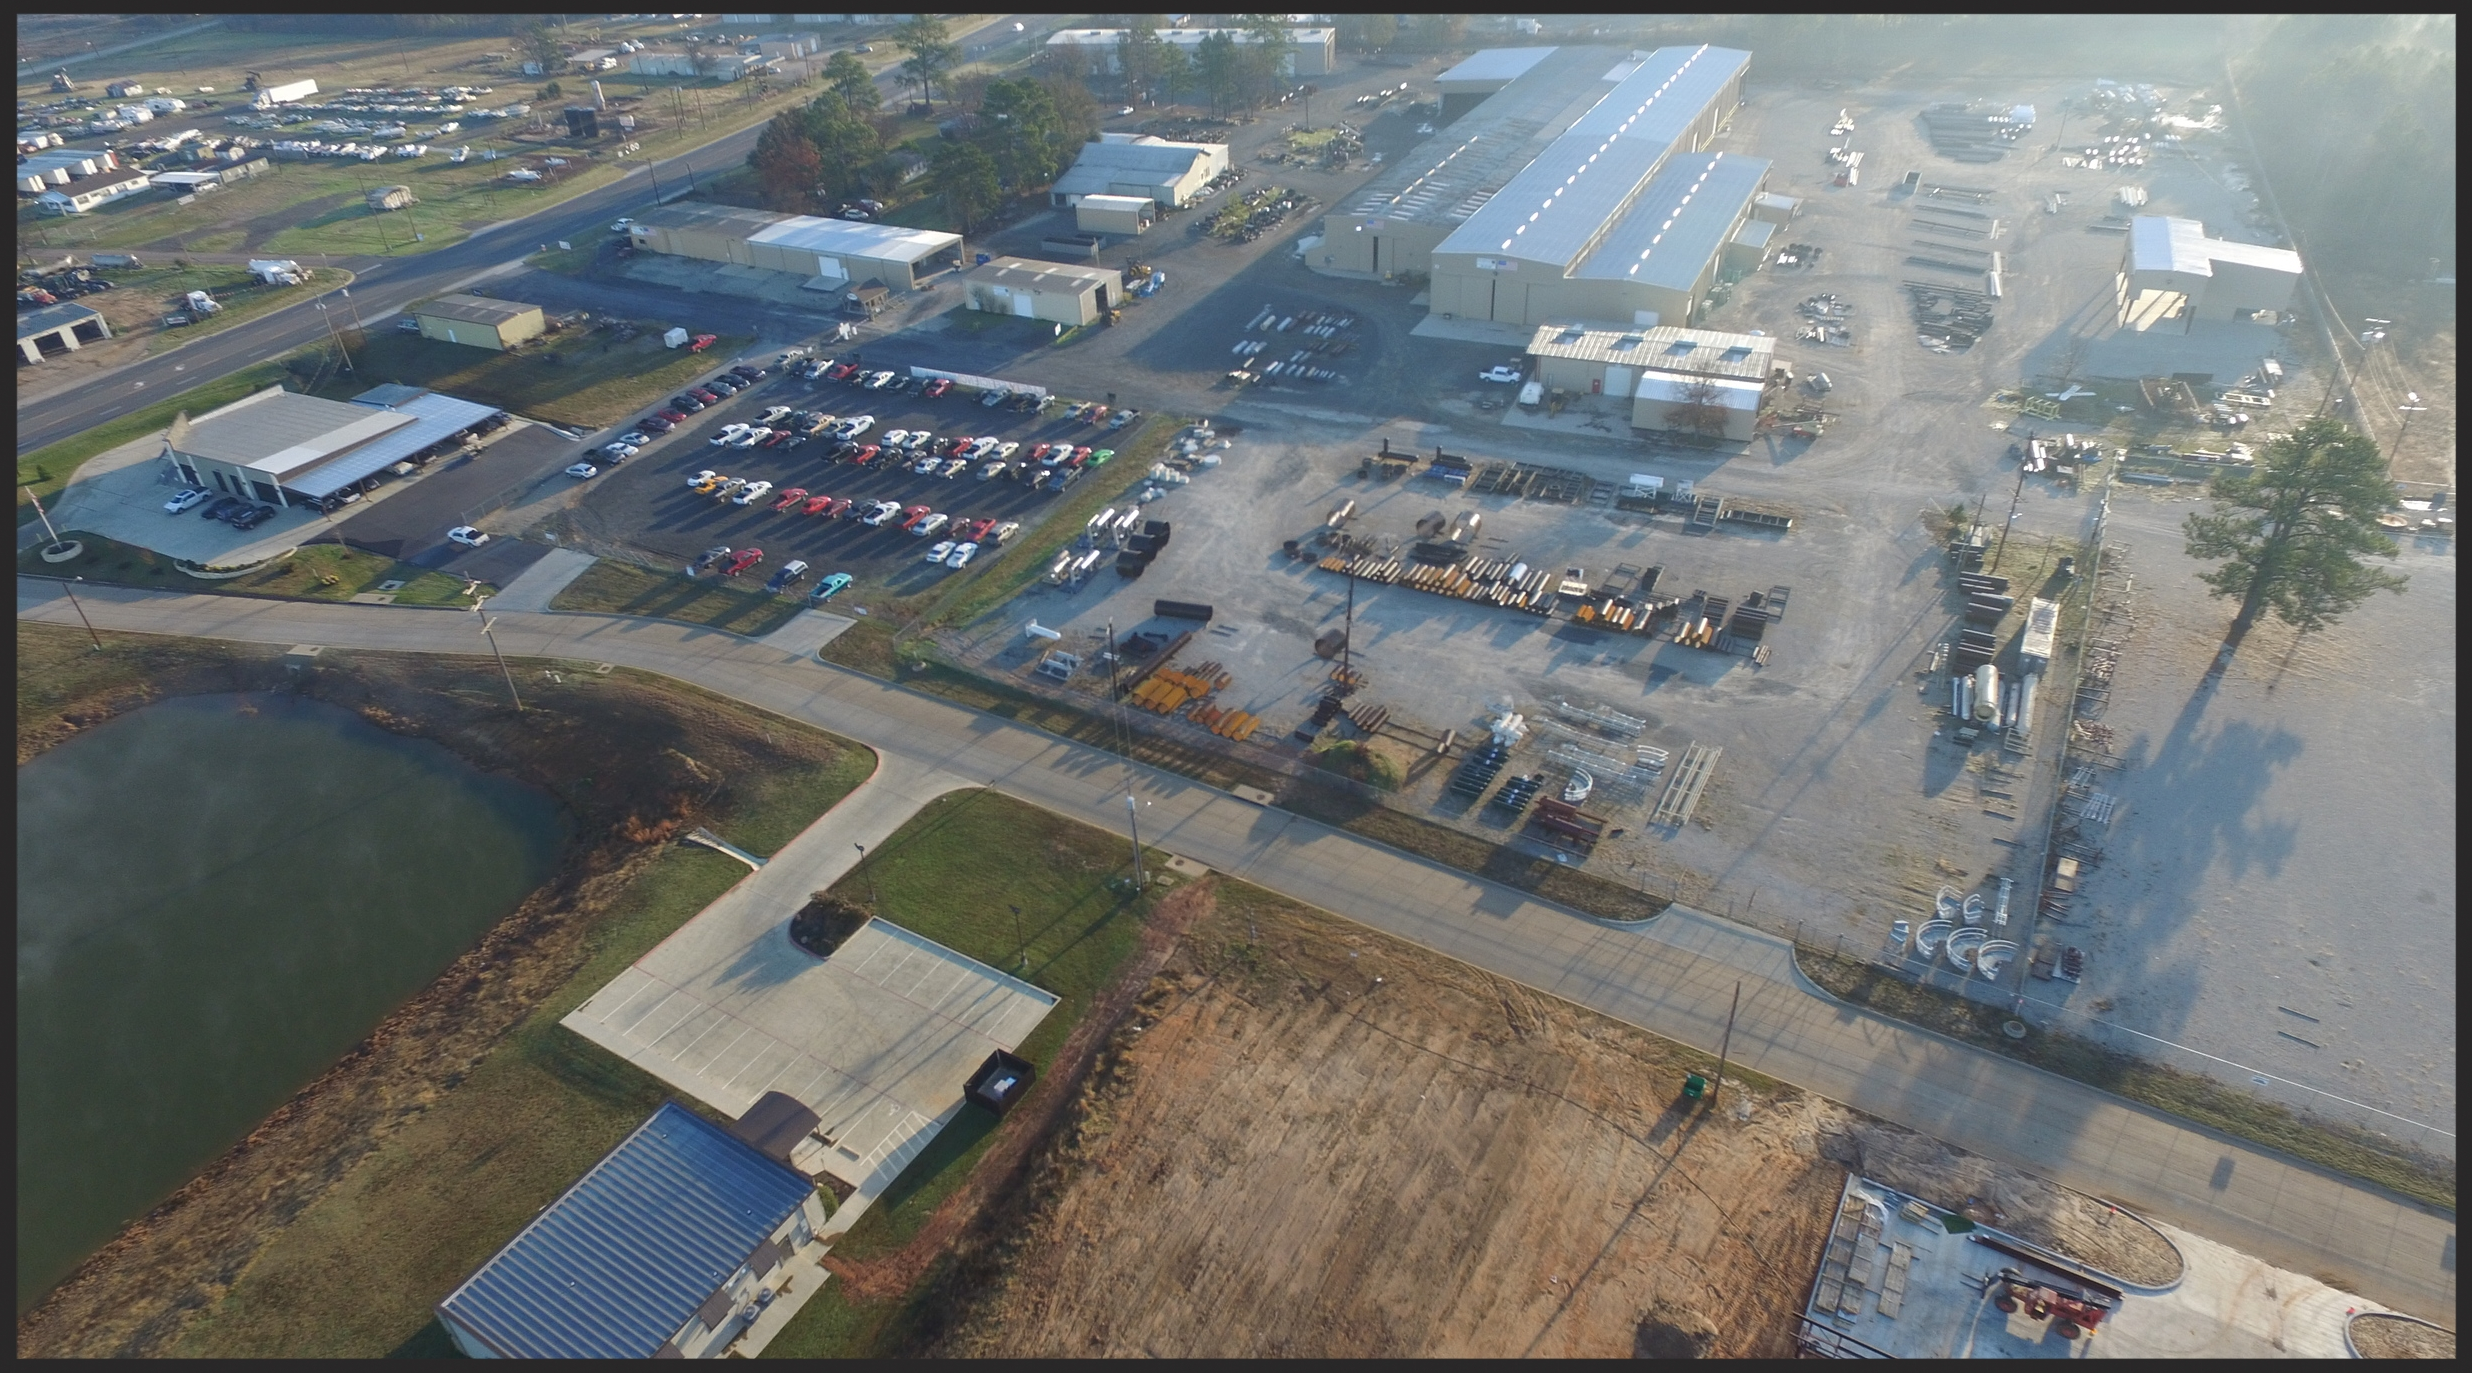 Aerial view of Energy Weldfab facilities in White Oak Texas